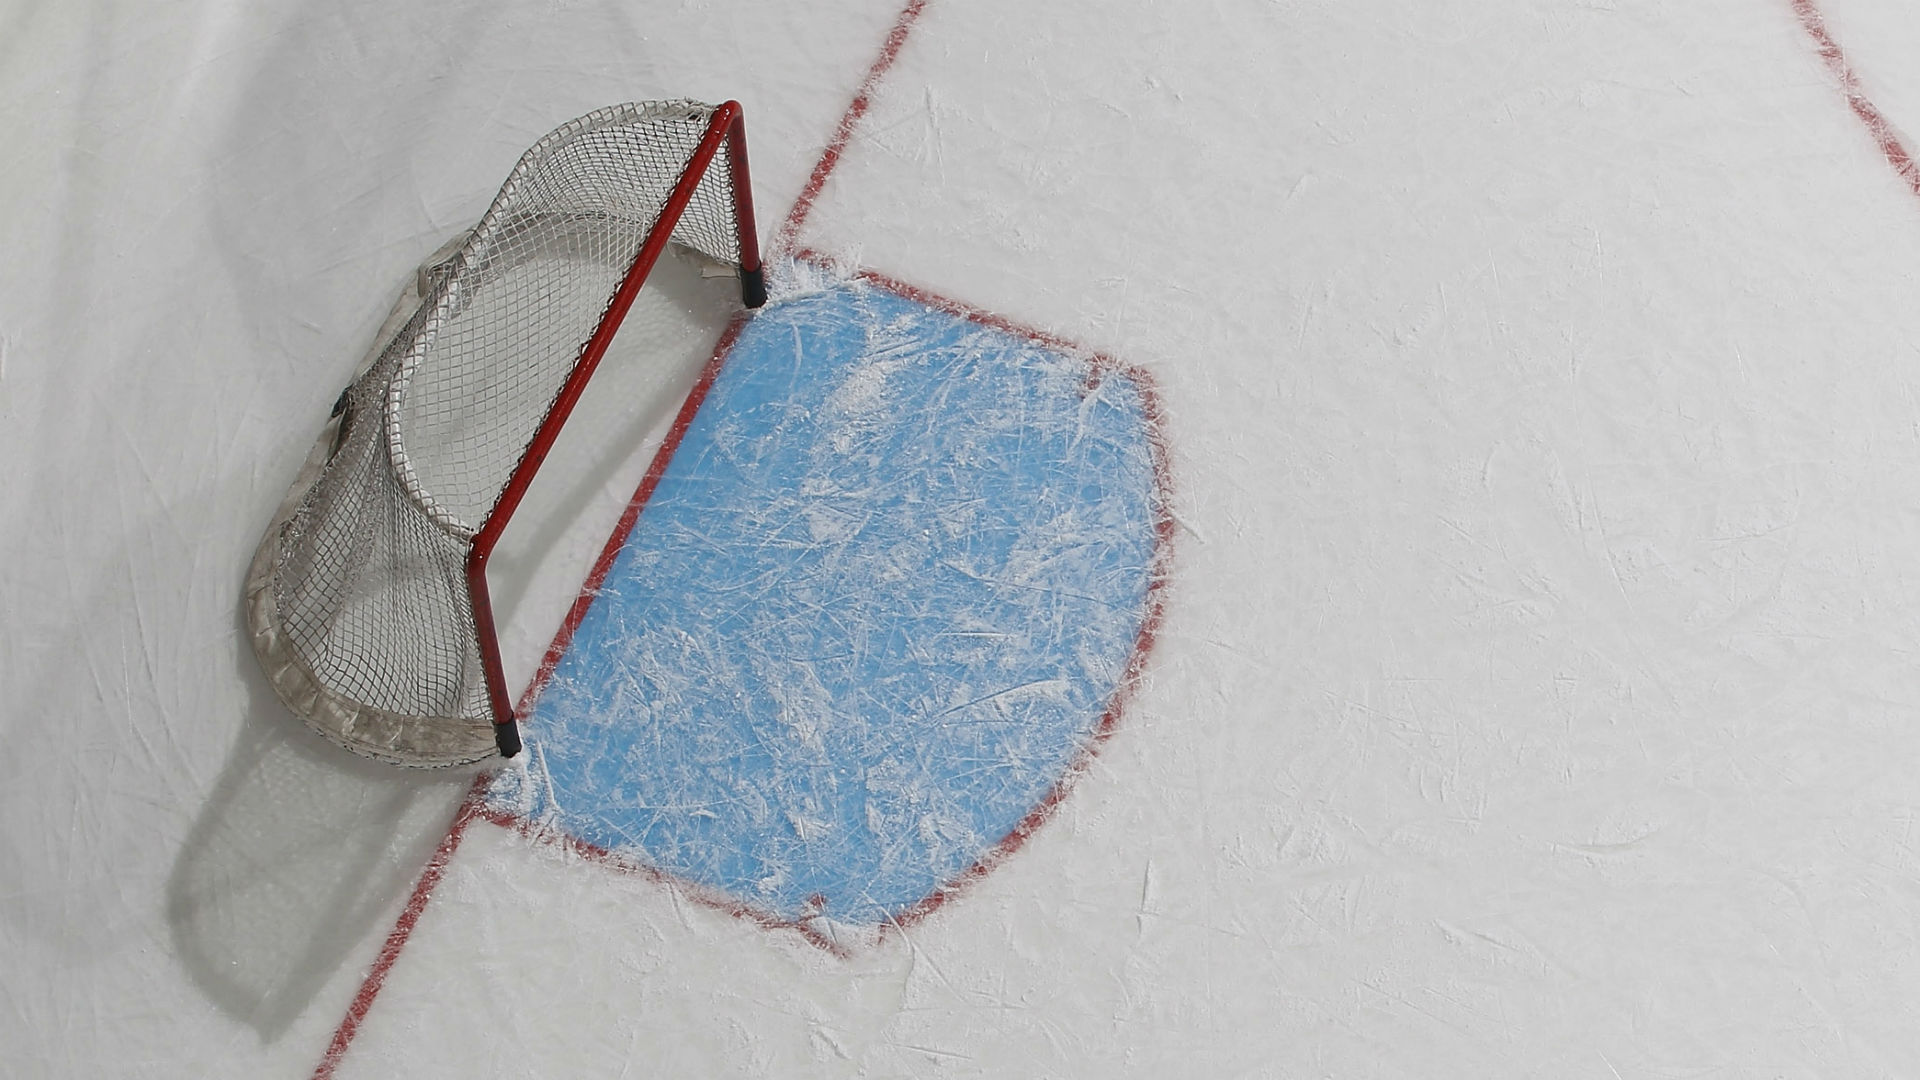 Minnesota confirms 'State of Hockey' title with high school championships reverence